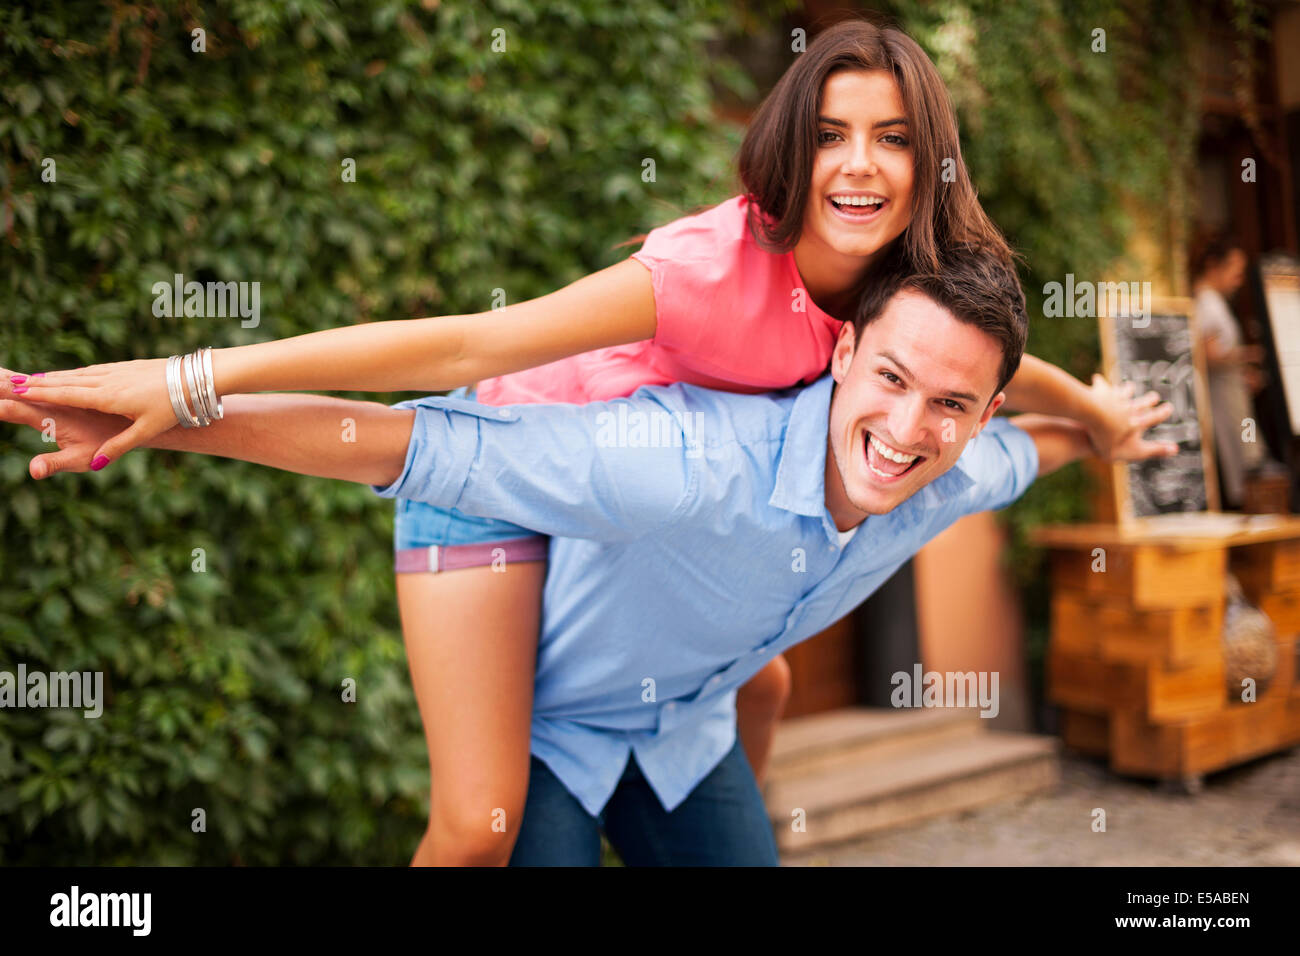 Young couple have fun during the date, Debica, Poland - Stock Image